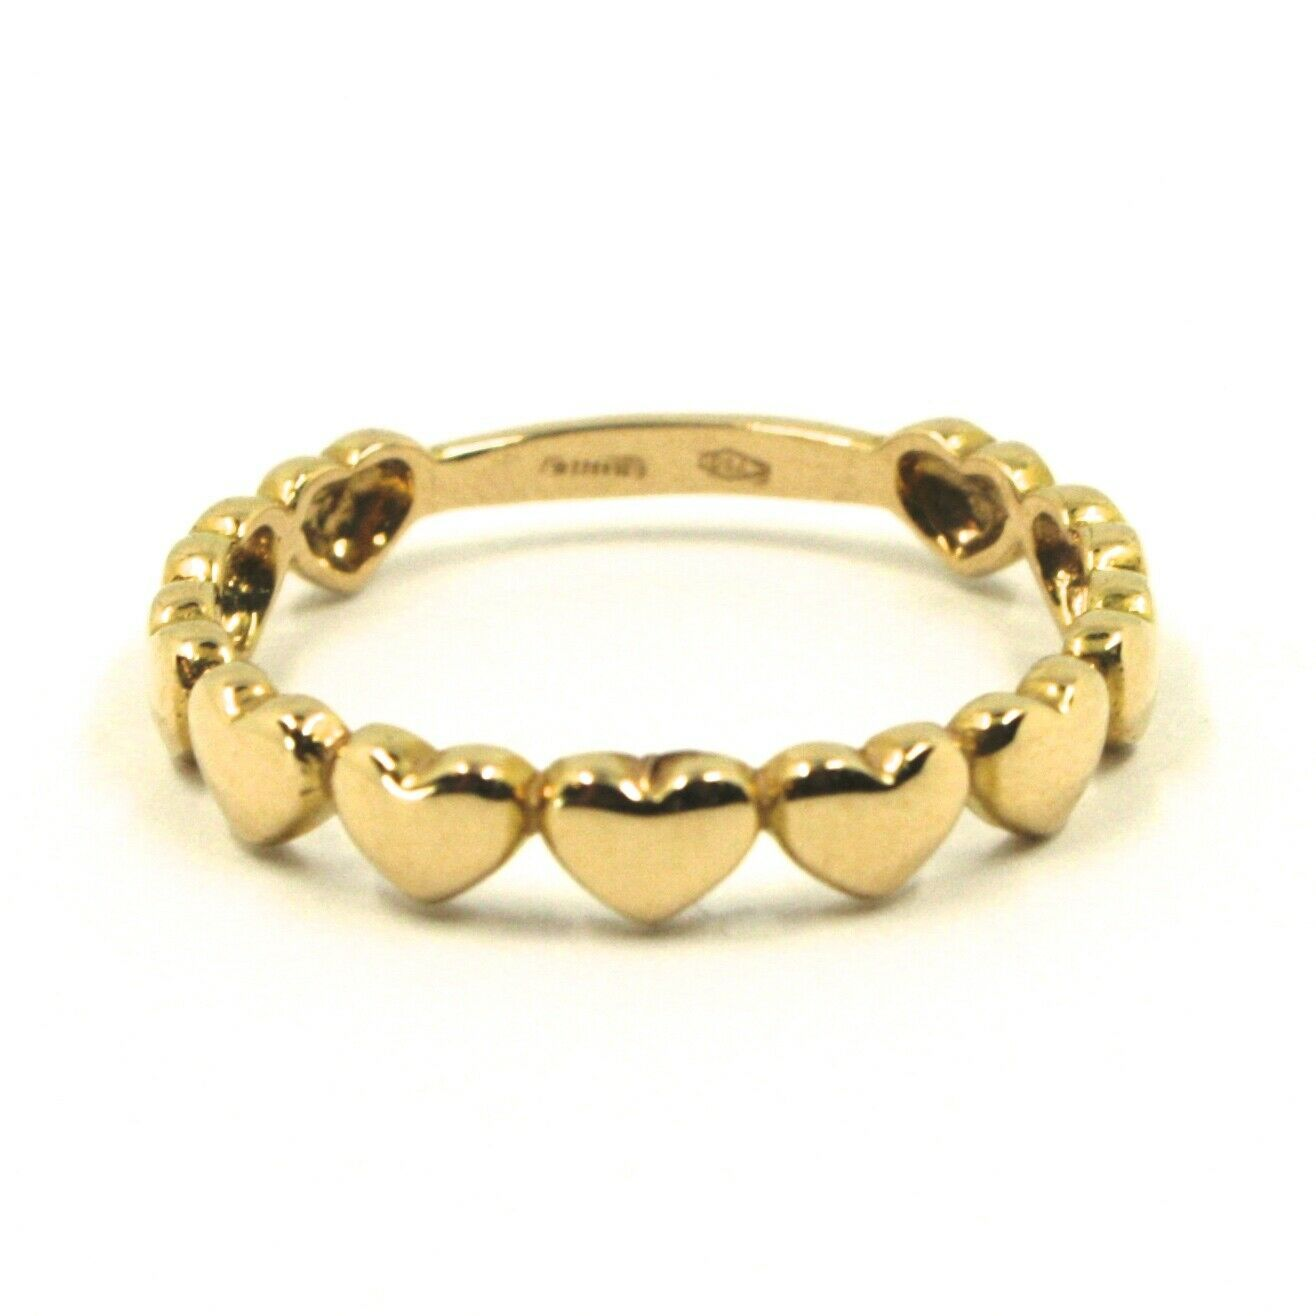 SOLID 18K YELLOW GOLD BAND RING, ROW OF ROUNDED HEARTS, HEART, MADE IN ITALY